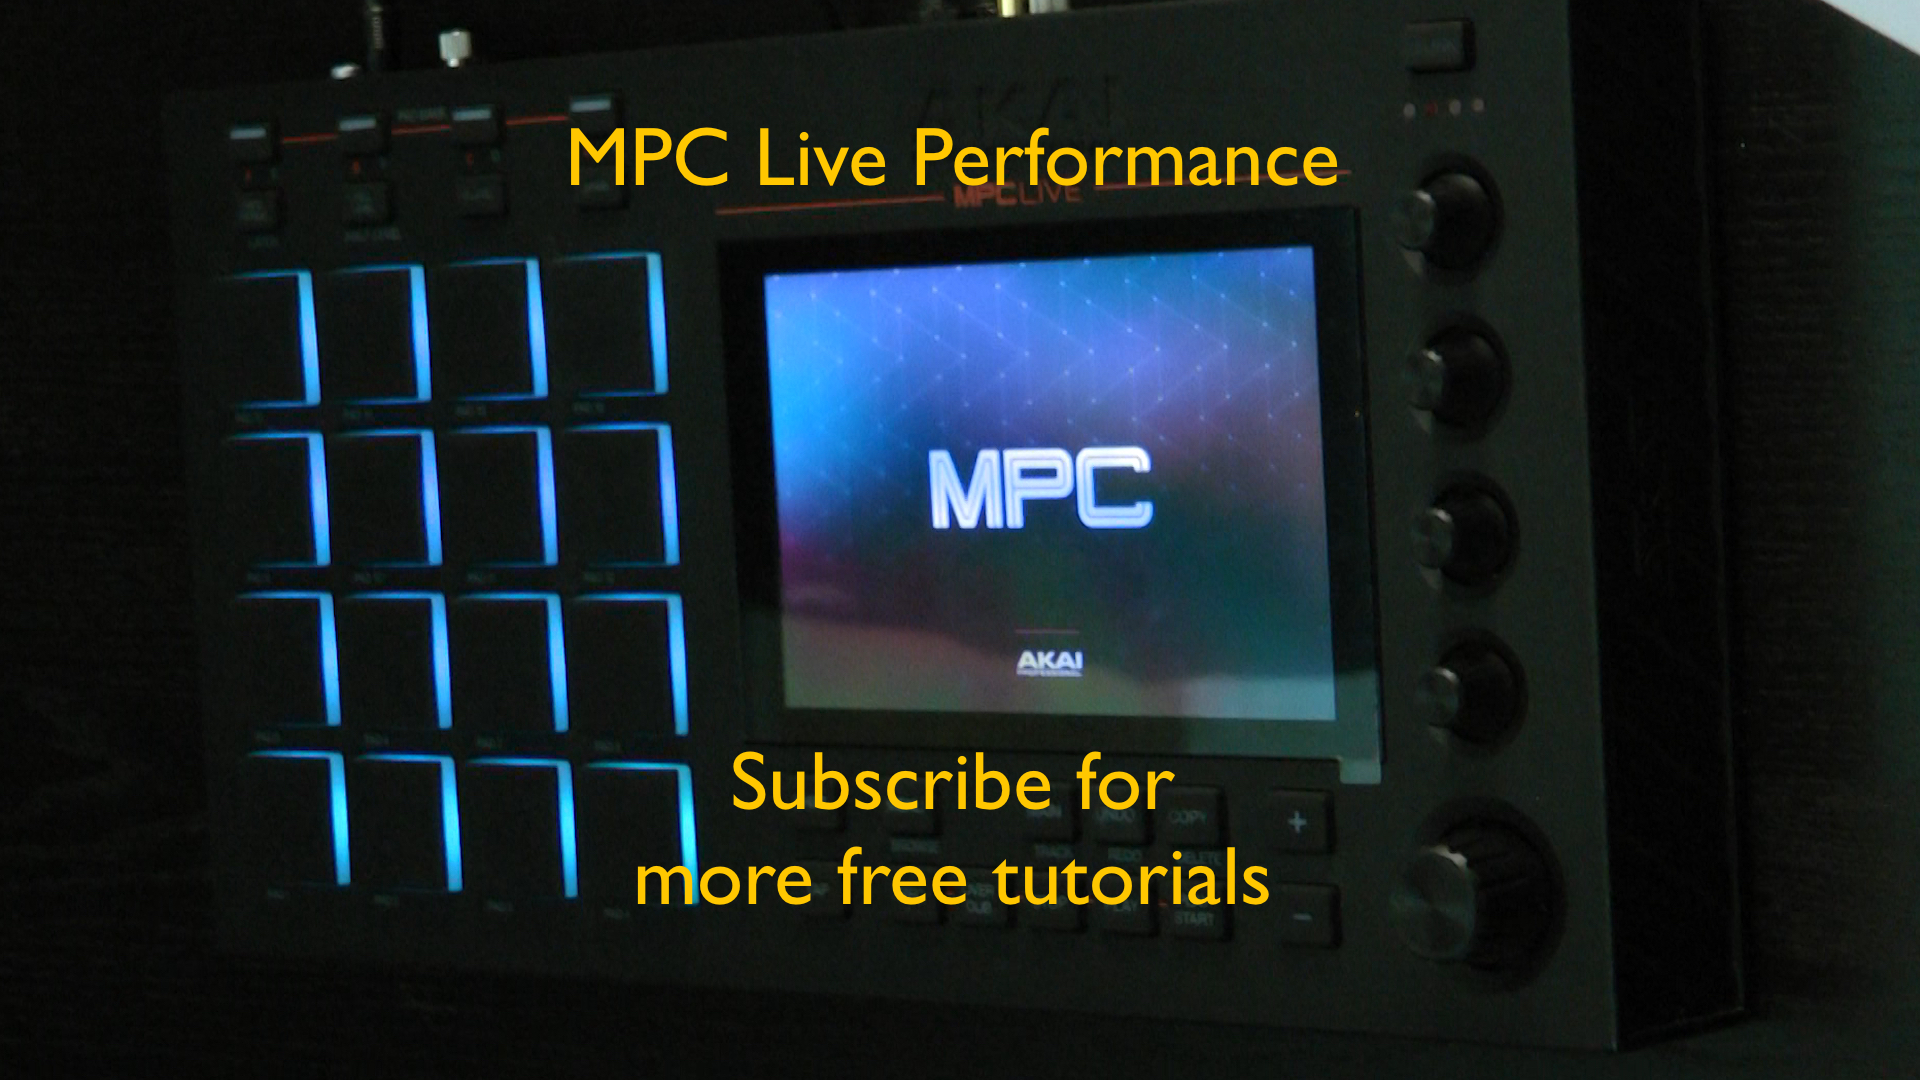 mpc live performance